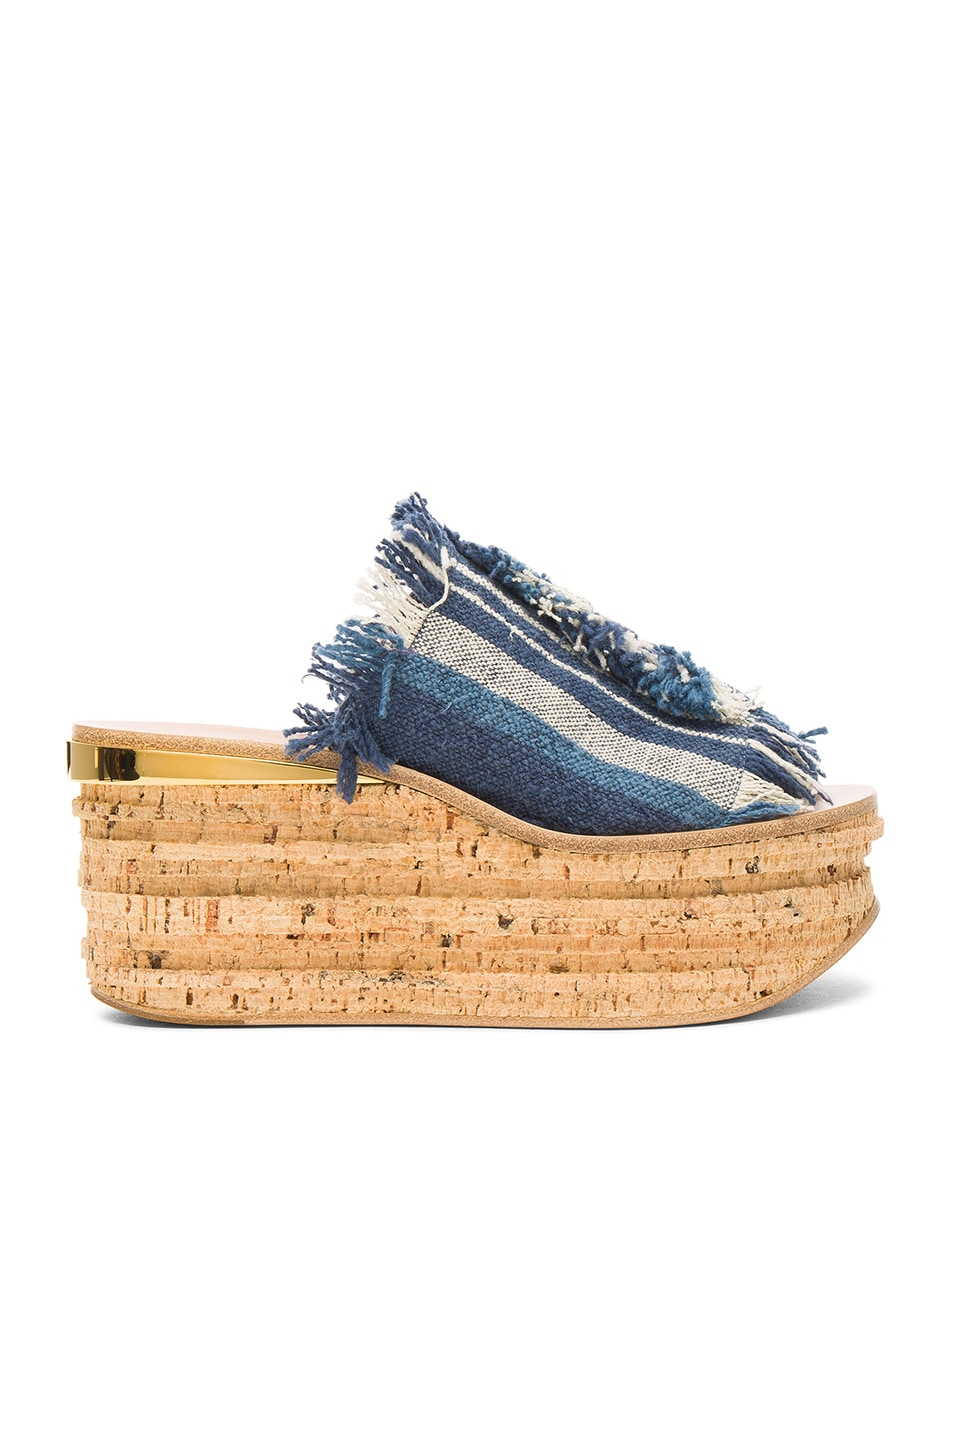 Chloé Canvases STRIPY CANVAS CAMILLE WEDGES IN BLUE, STRIPES.